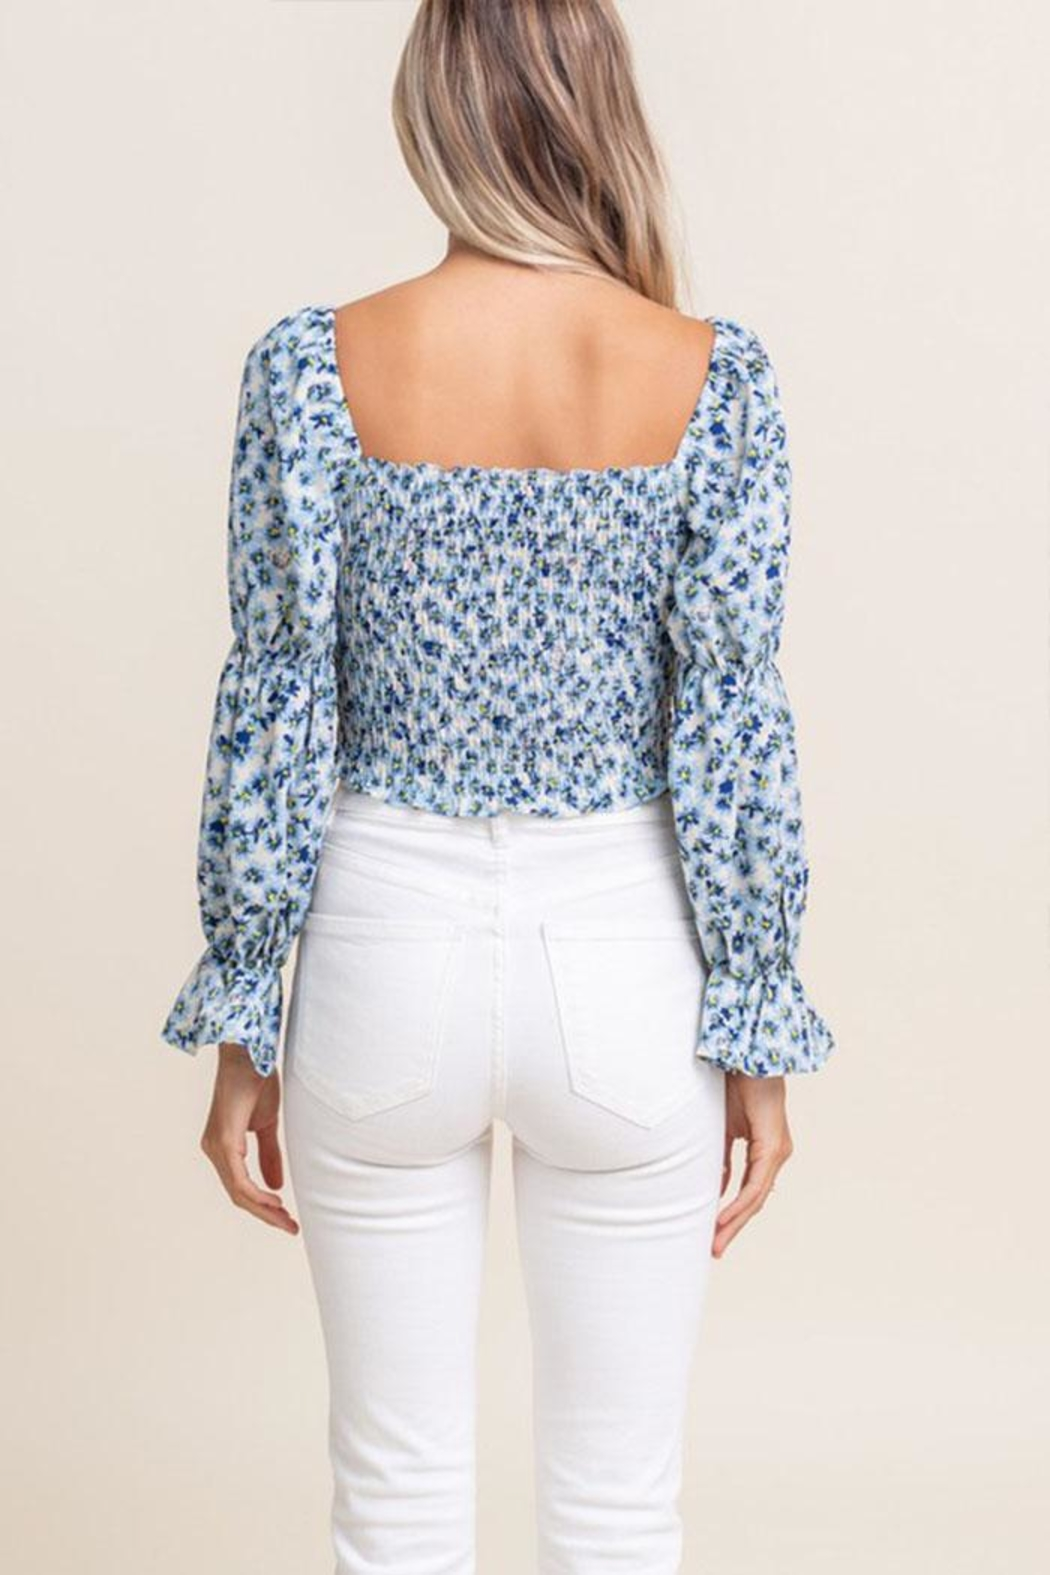 Lush Smocked Daisy Crop-Top - Side Cropped Image